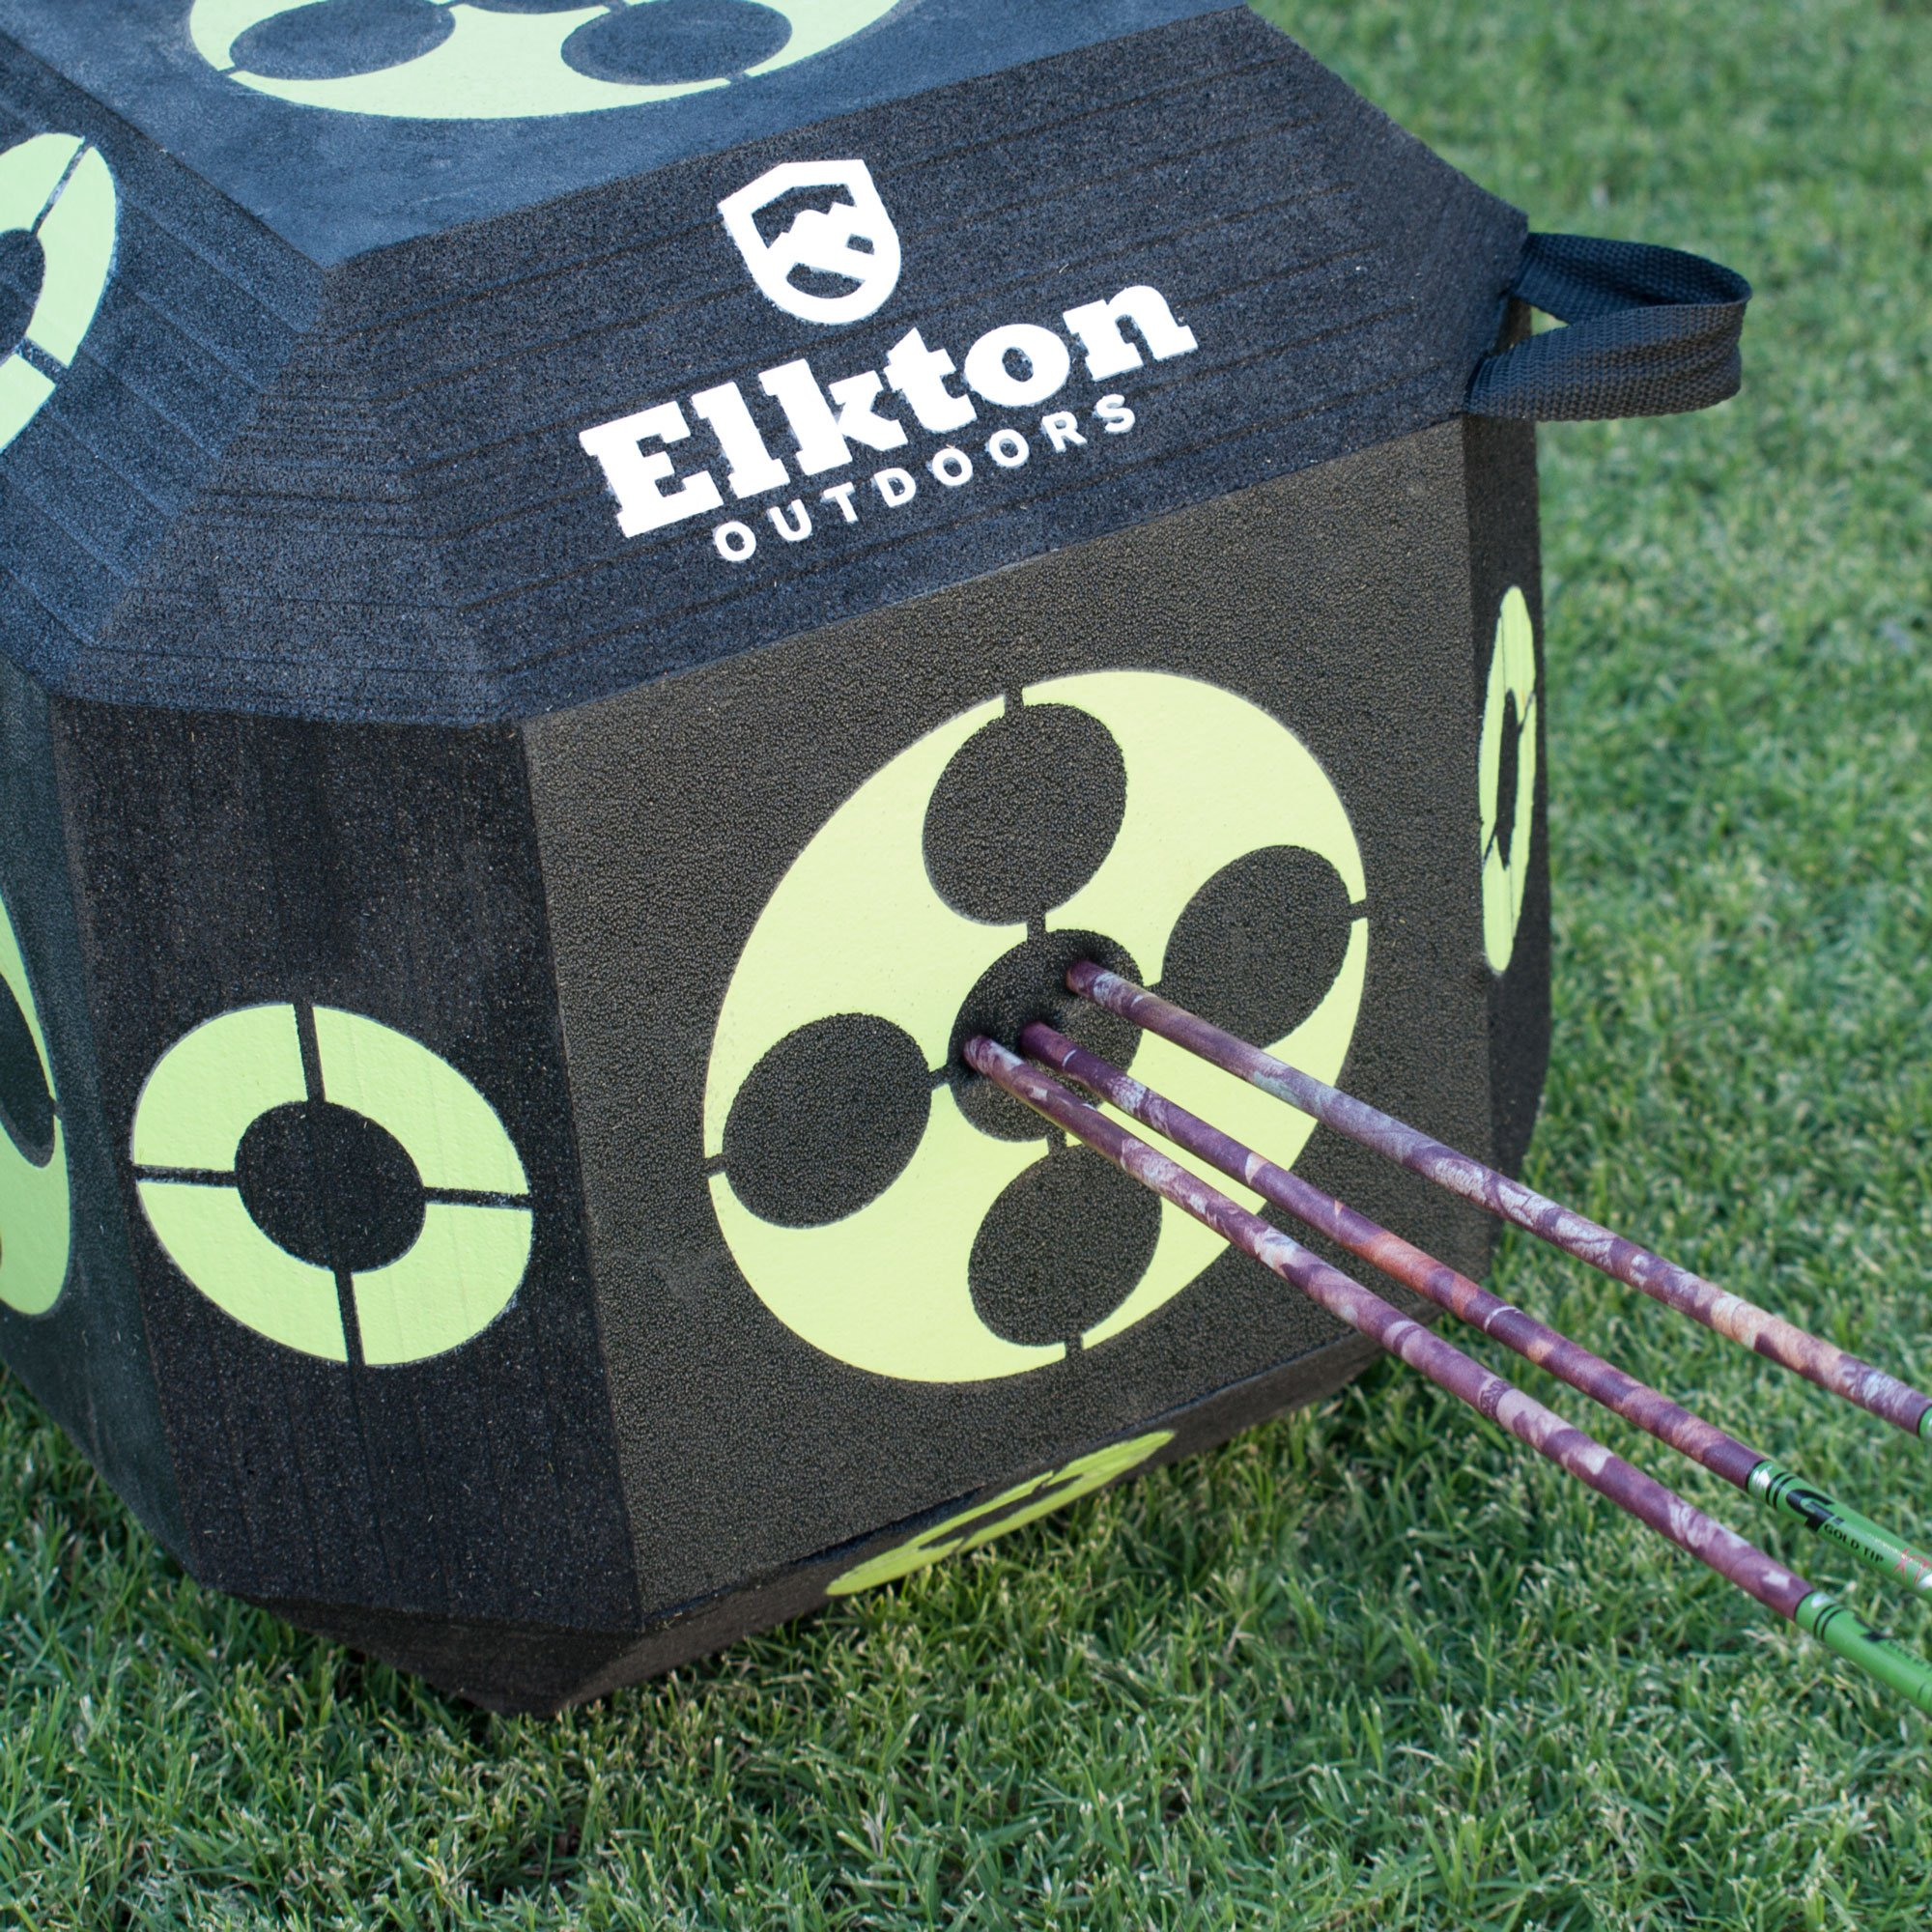 Elkton Outdoors 2017 Edition 18-Sided 3D Cube Reusable Archery Target Constructed With Arrow Puller & Rapid Self Healing XPE Foam for all Arrow Types by Elkton Outdoors (Image #6)